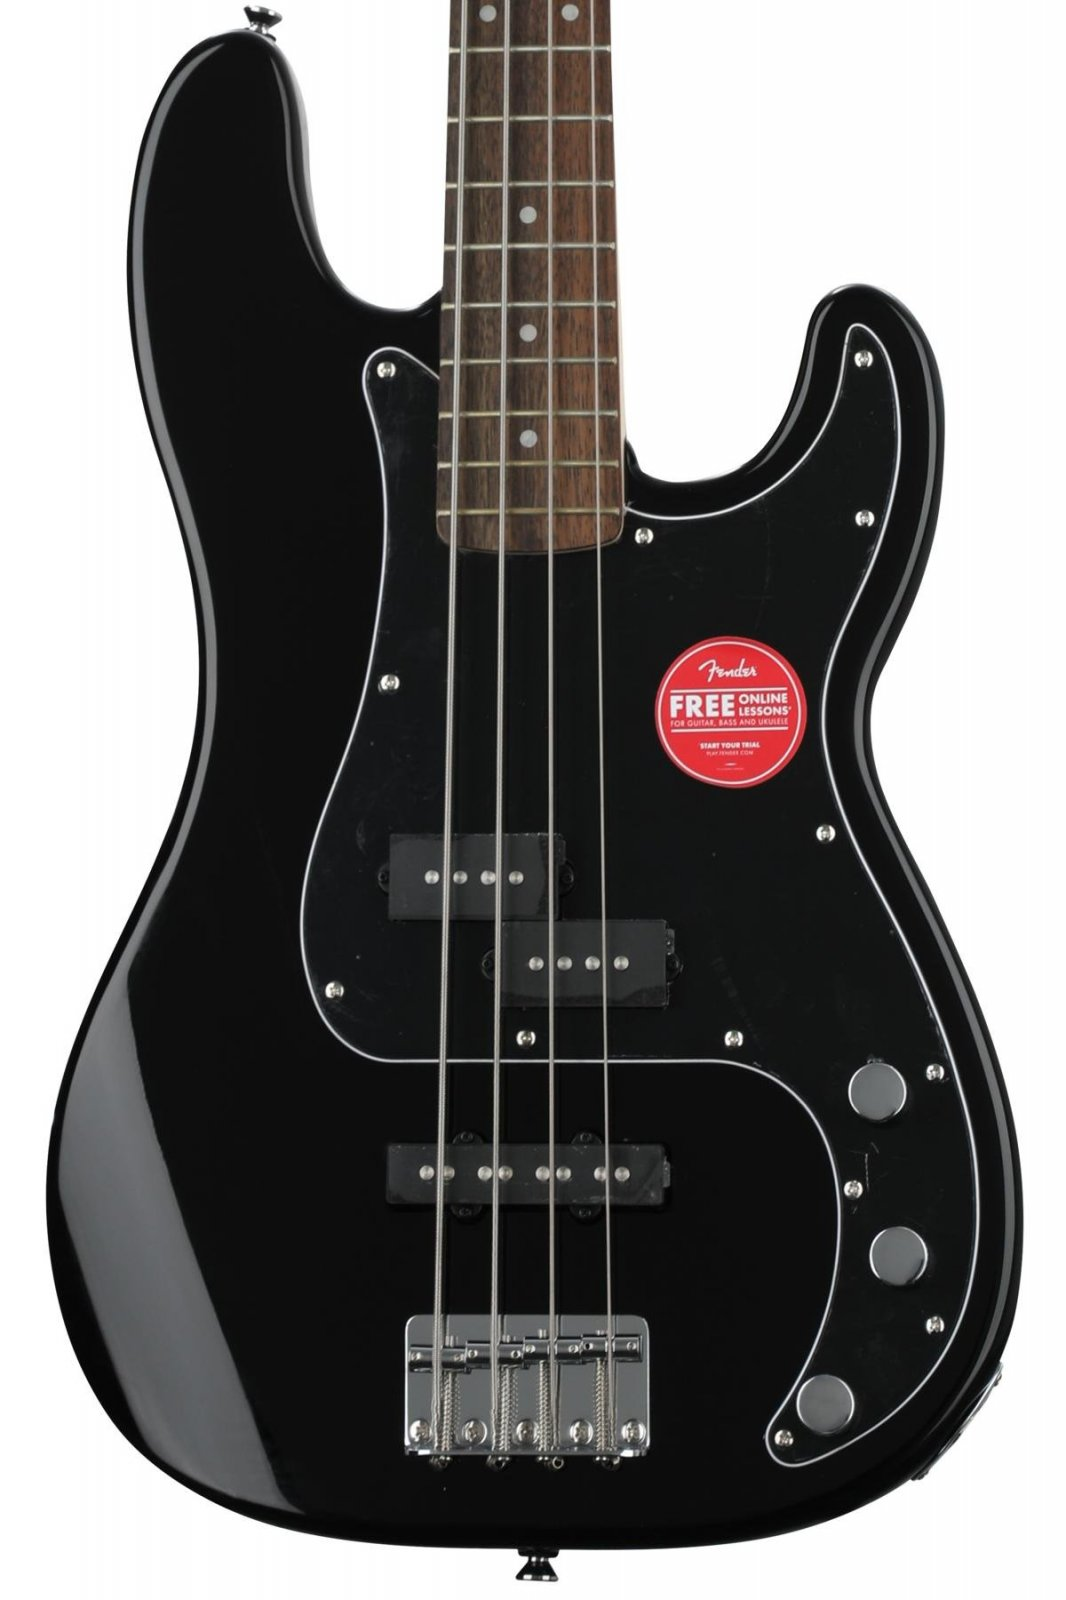 Fender Squier Affinity P Bass With a Laurel Fingerboard in Black